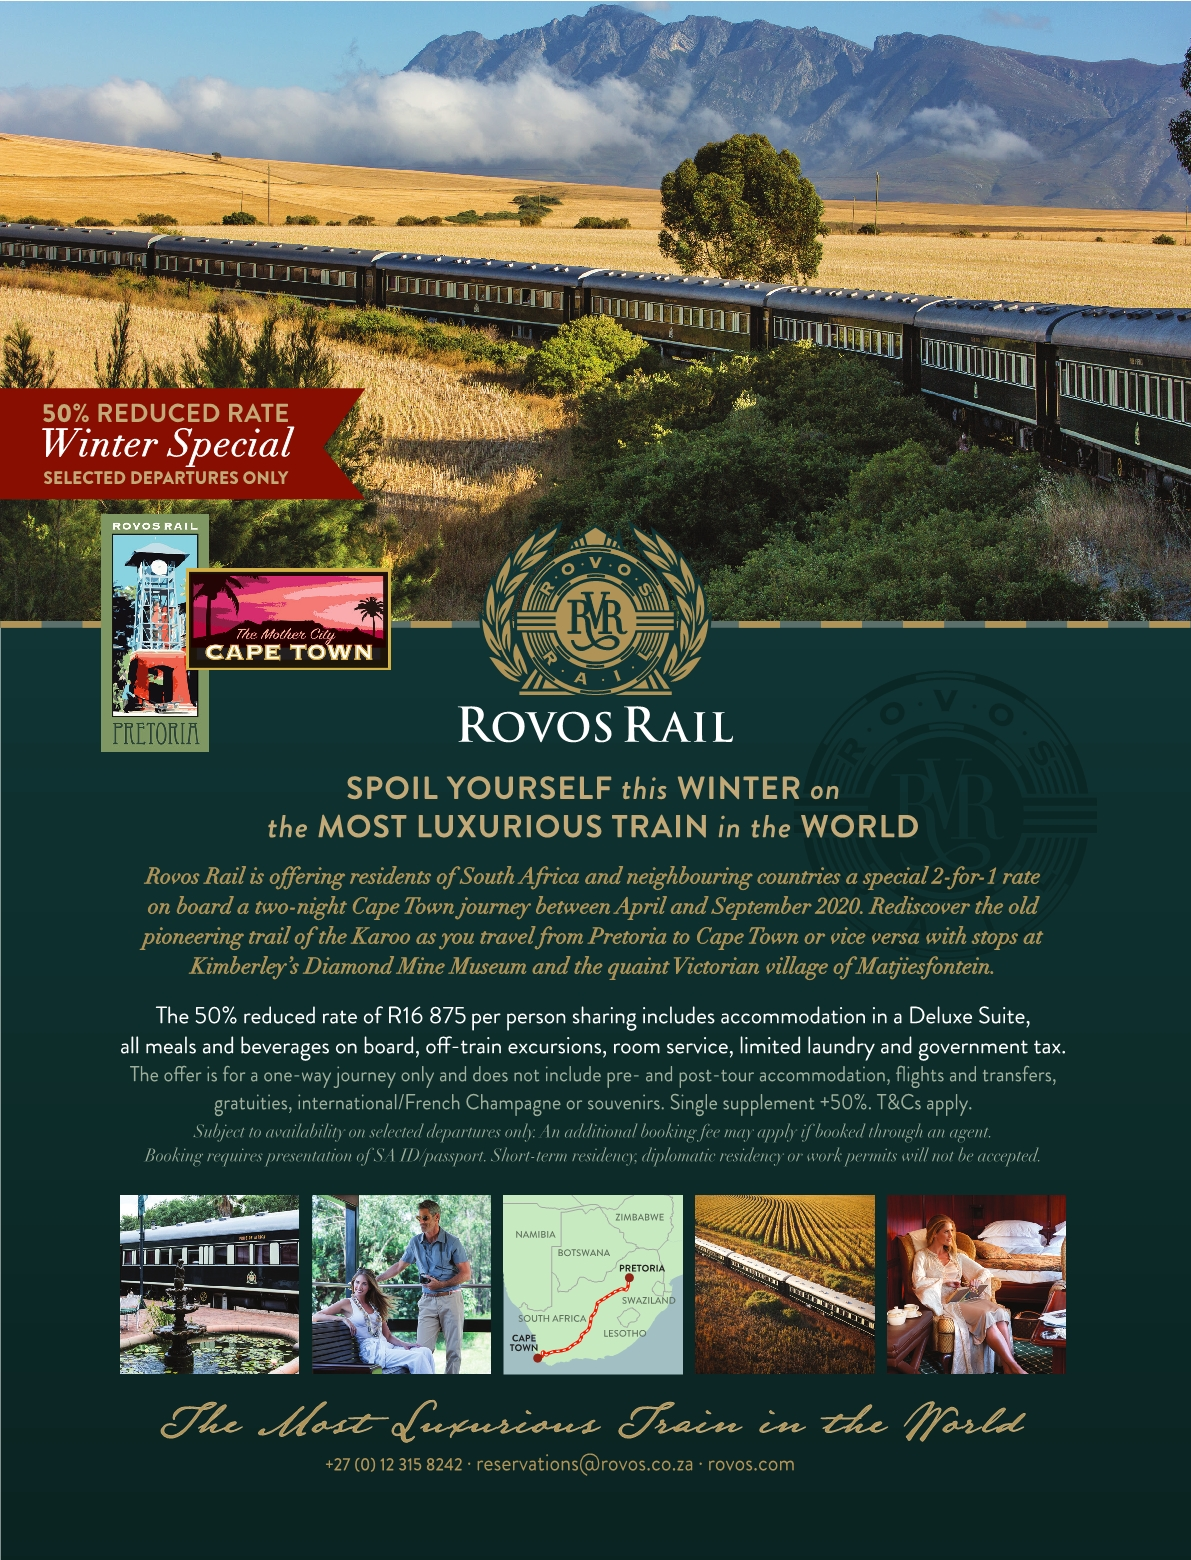 Rovos rail winter special